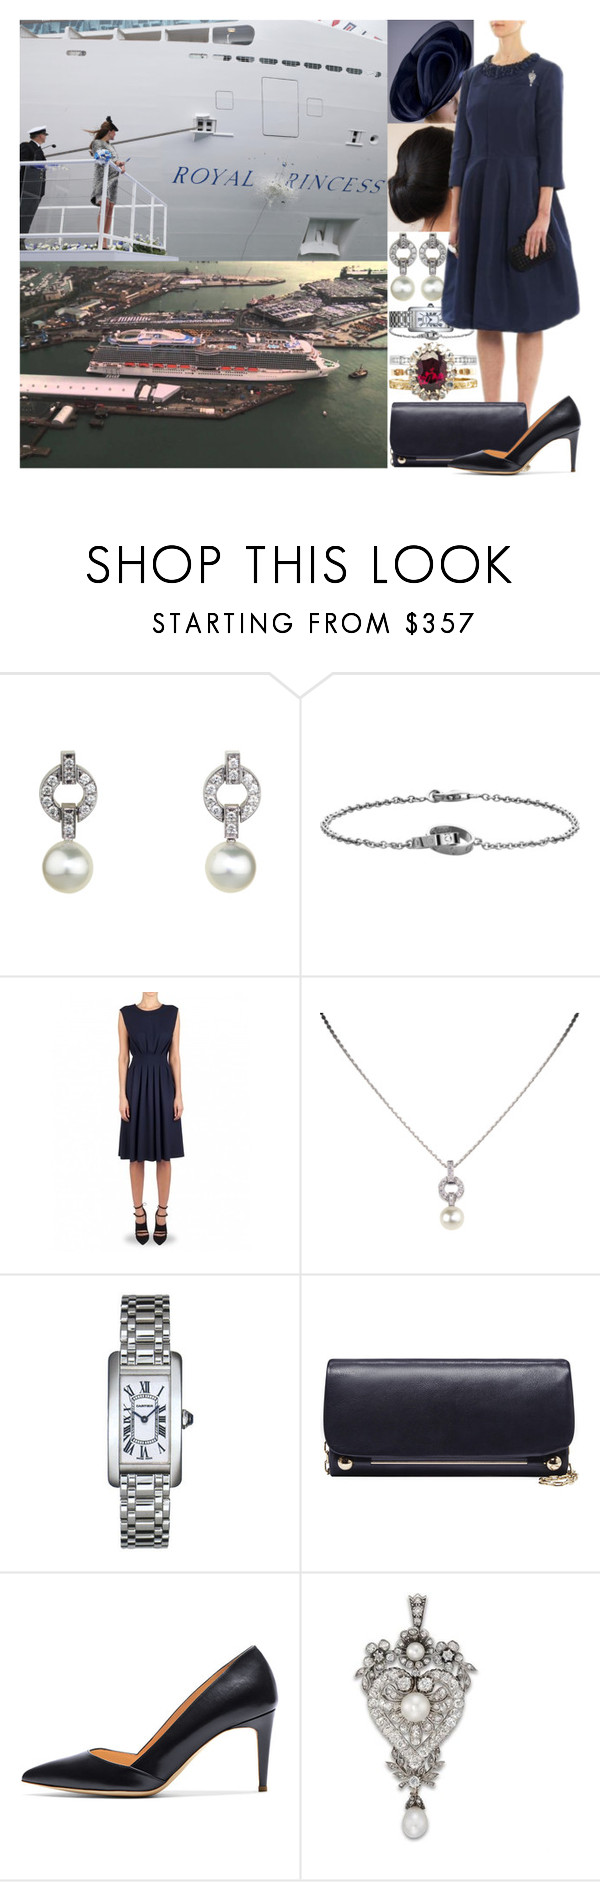 """""""Attending the official naming ceremony of the Majestic Princess at Ocean Dock Terminal, Southampton"""" by marywindsor ❤ liked on Polyvore featuring Cartier, Amanda Wakeley and Rupert Sanderson"""